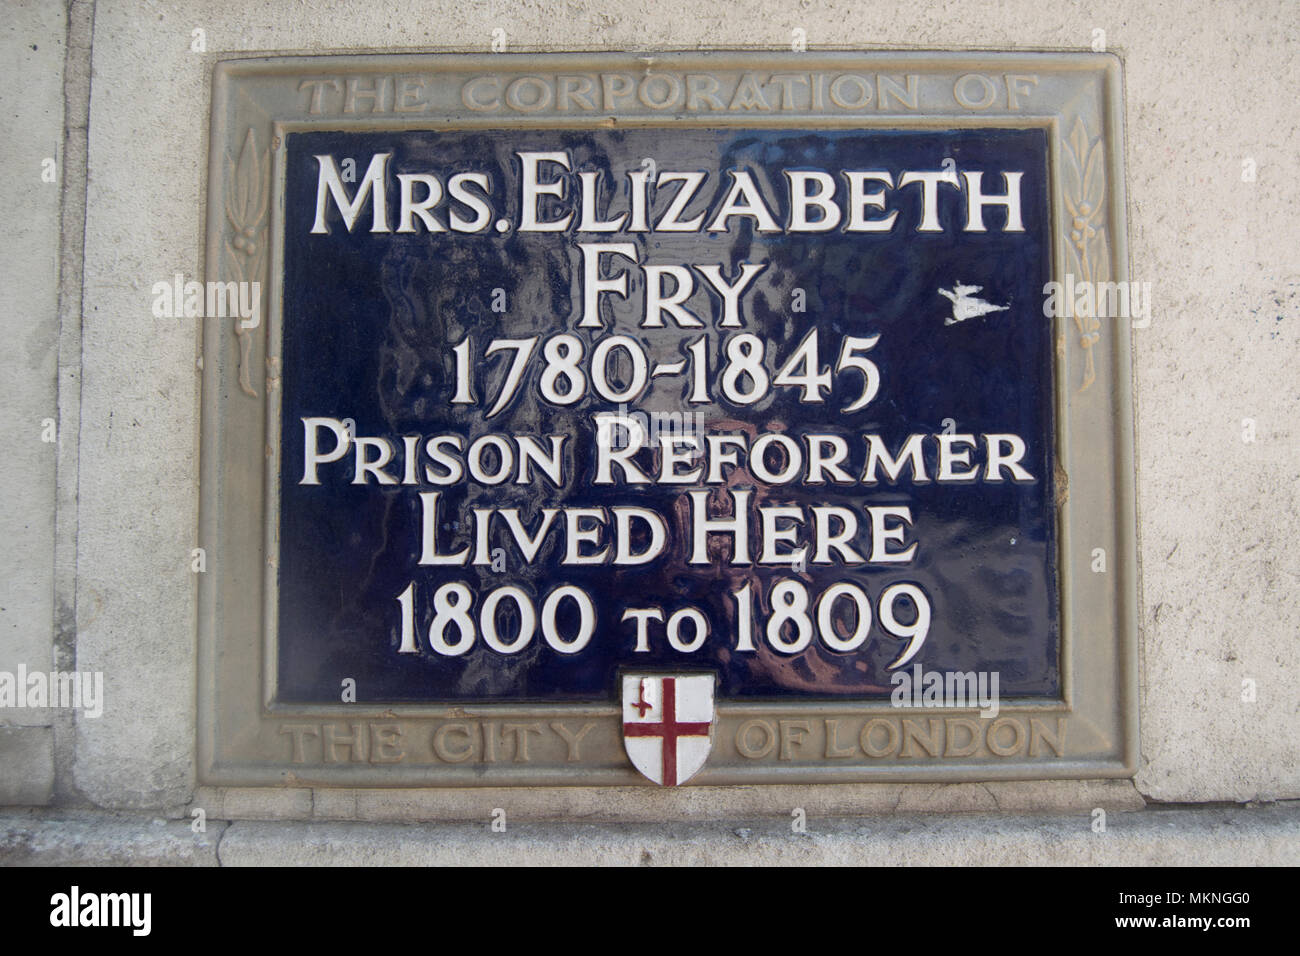 city of london blue plaque marking the early 1800s home of prison reformer elizabeth fry - Stock Image